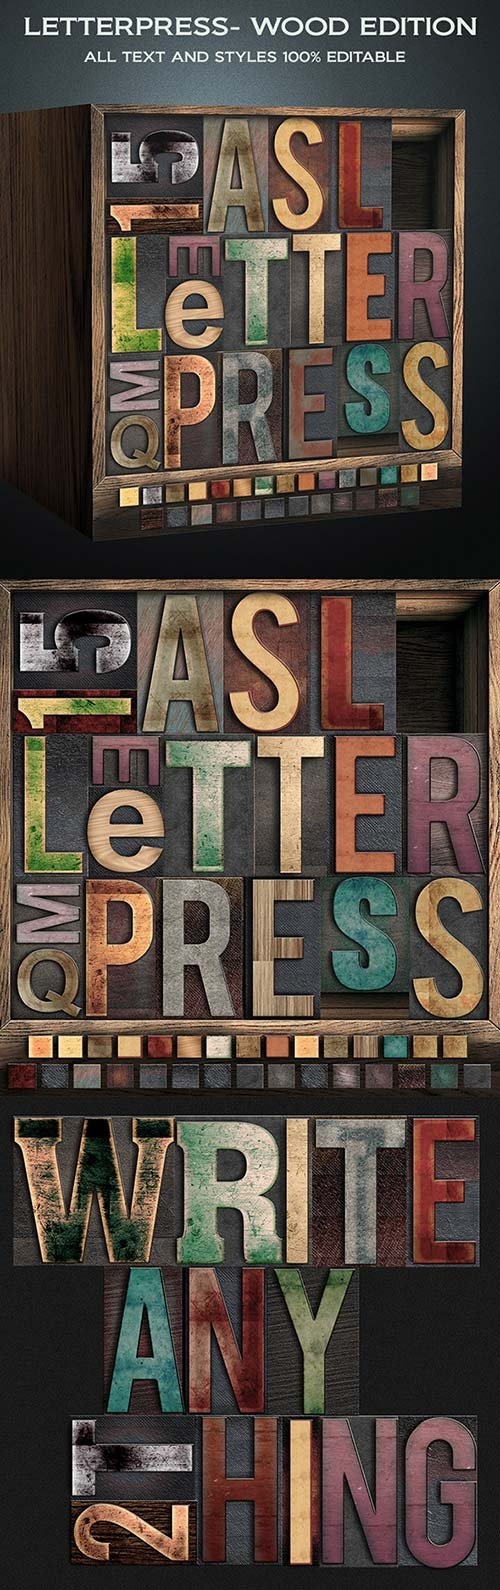 GraphicRiver Letterpress - Wood Edition